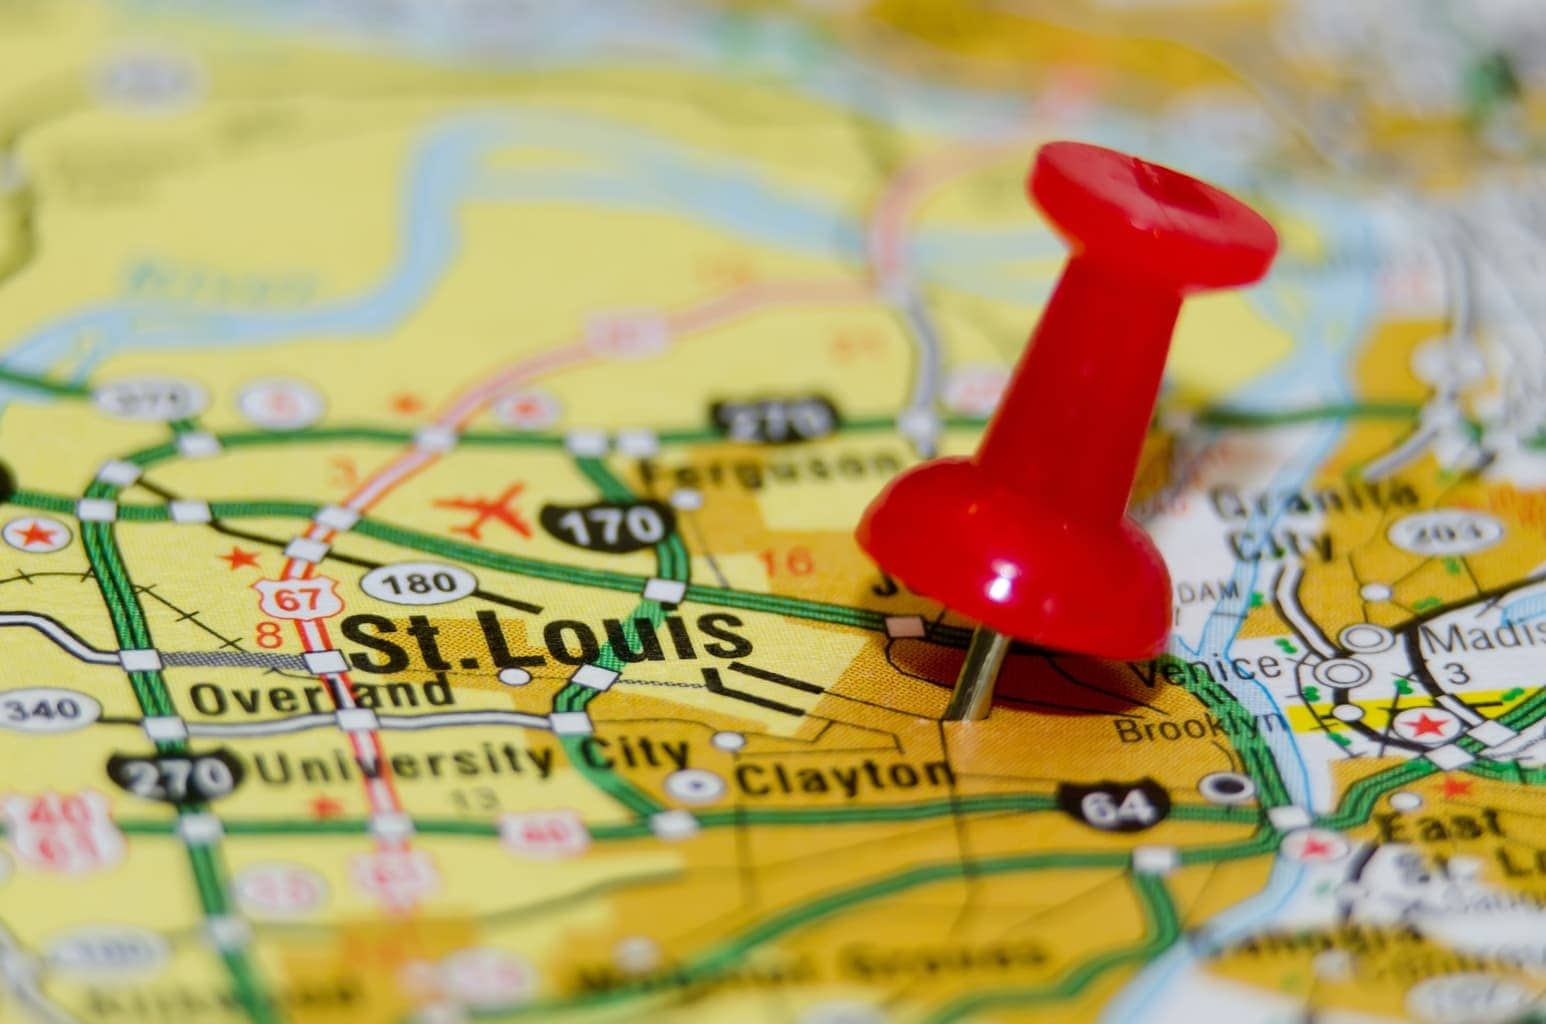 Saint Louis, Things to do in St. Louis Missouri, Saint Louis Travel Guide